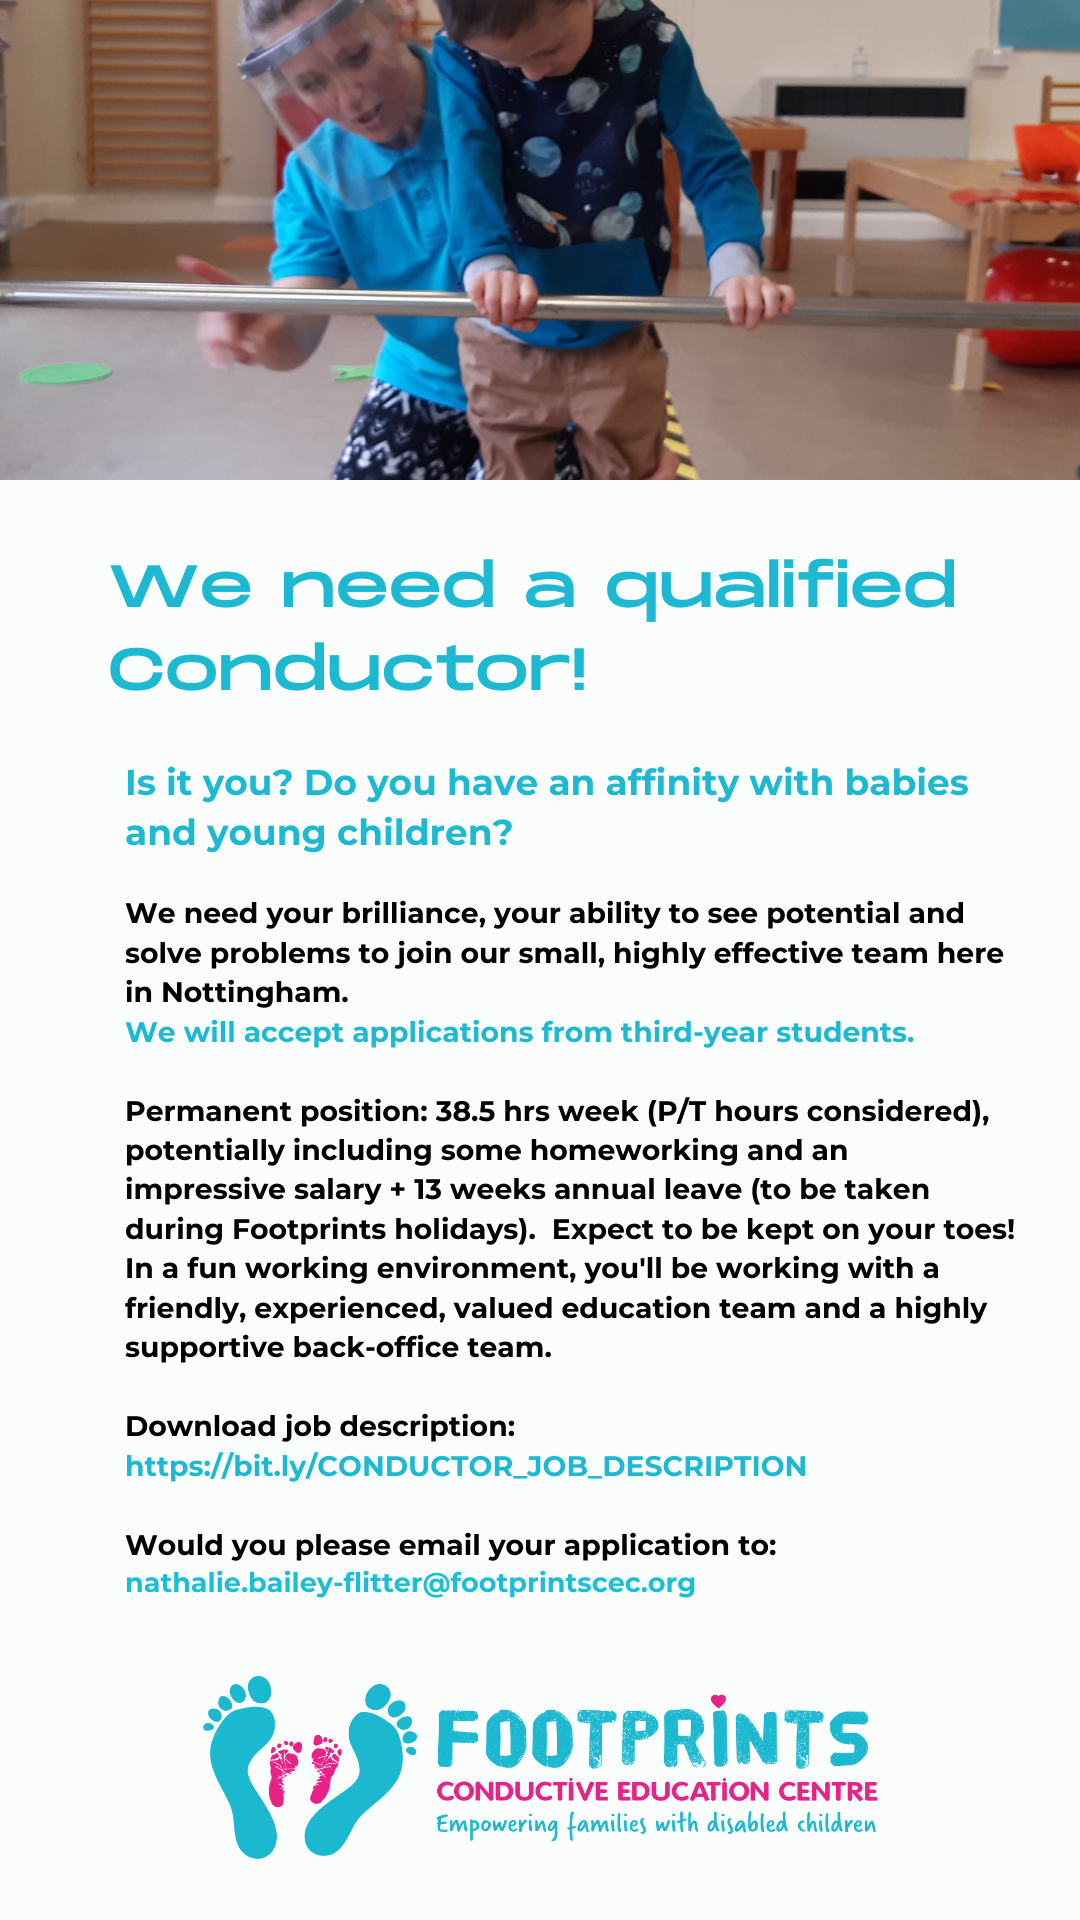 Image of an advert for a Conductor